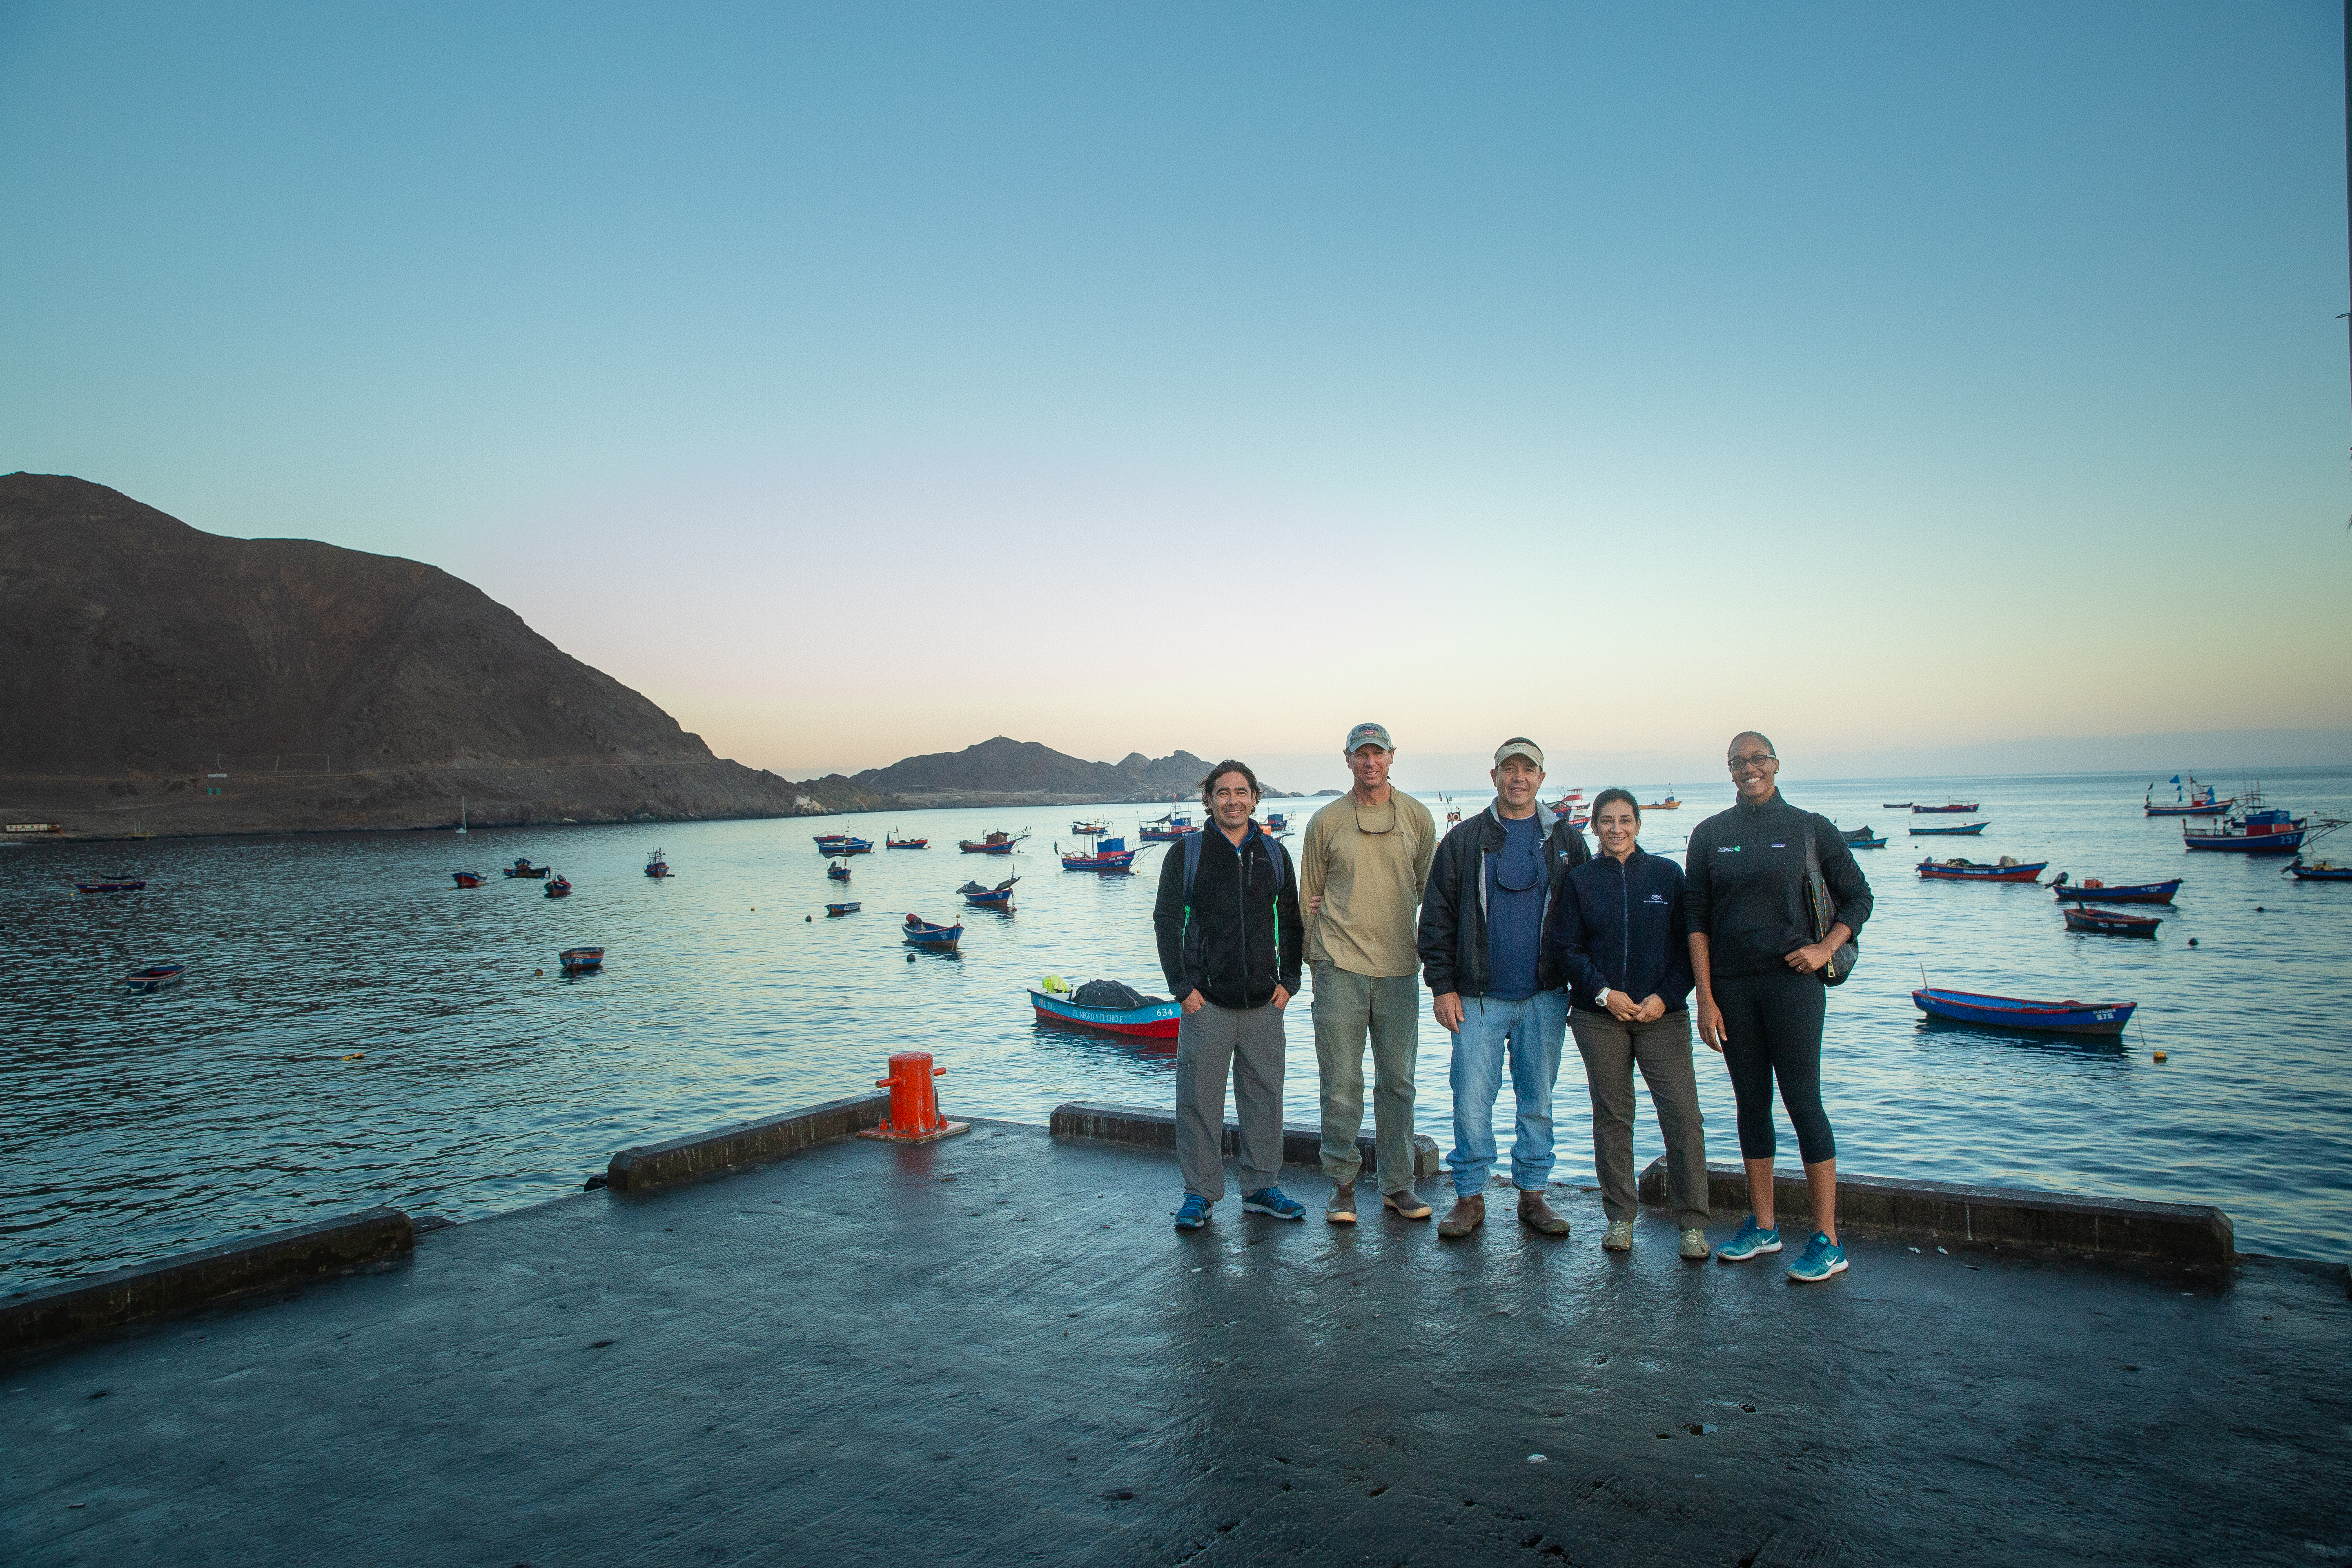 five people standing on a dock in Chile, with small boats behind them